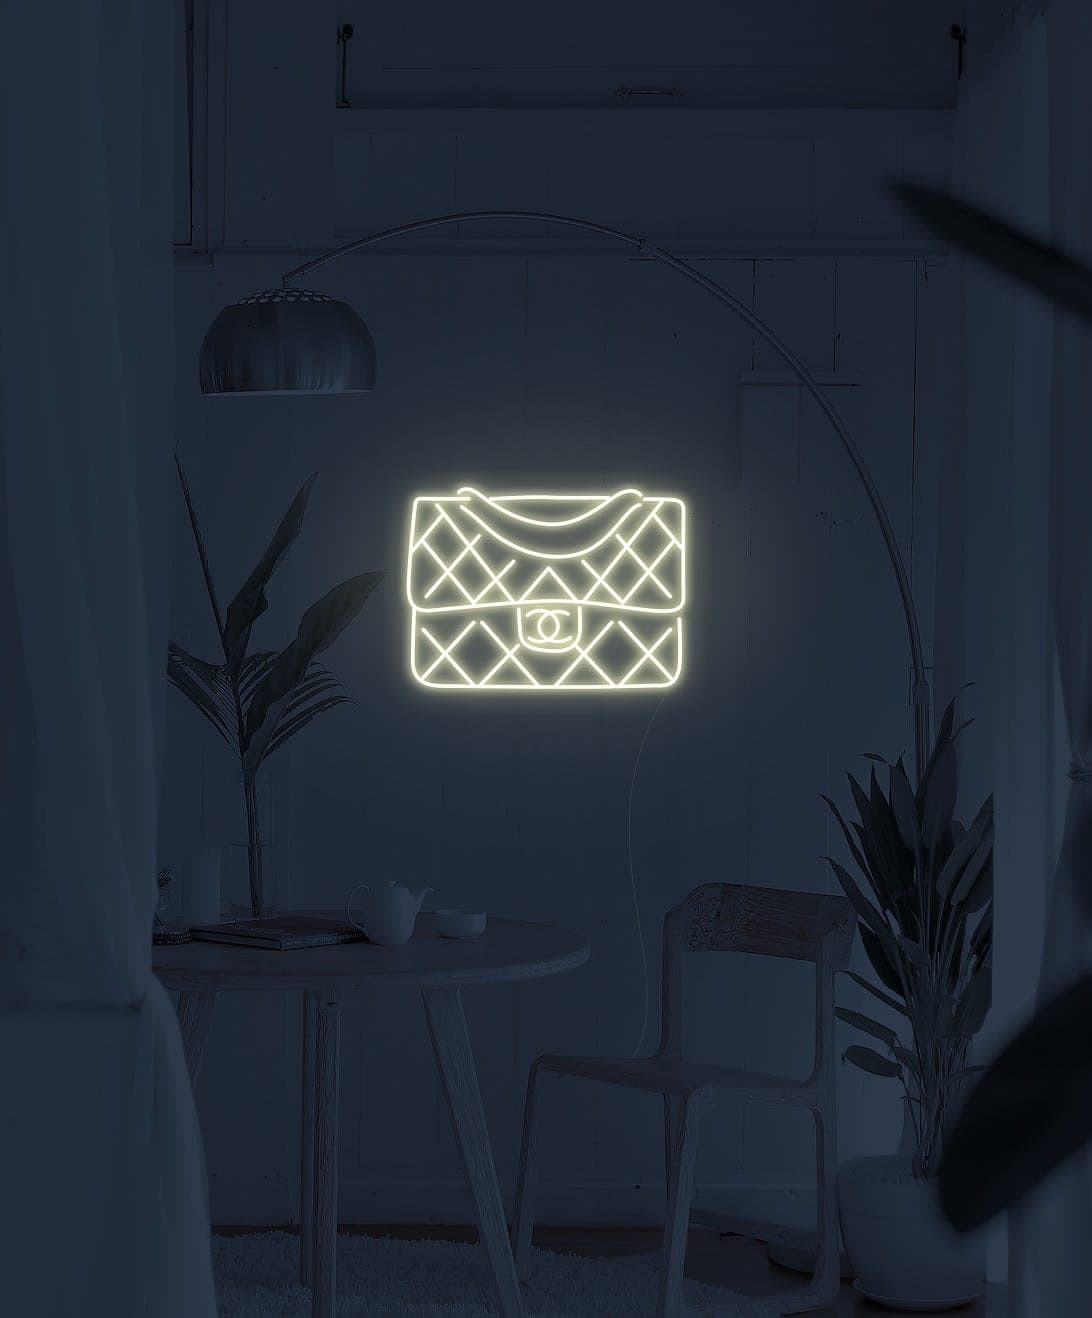 chanel neon signs